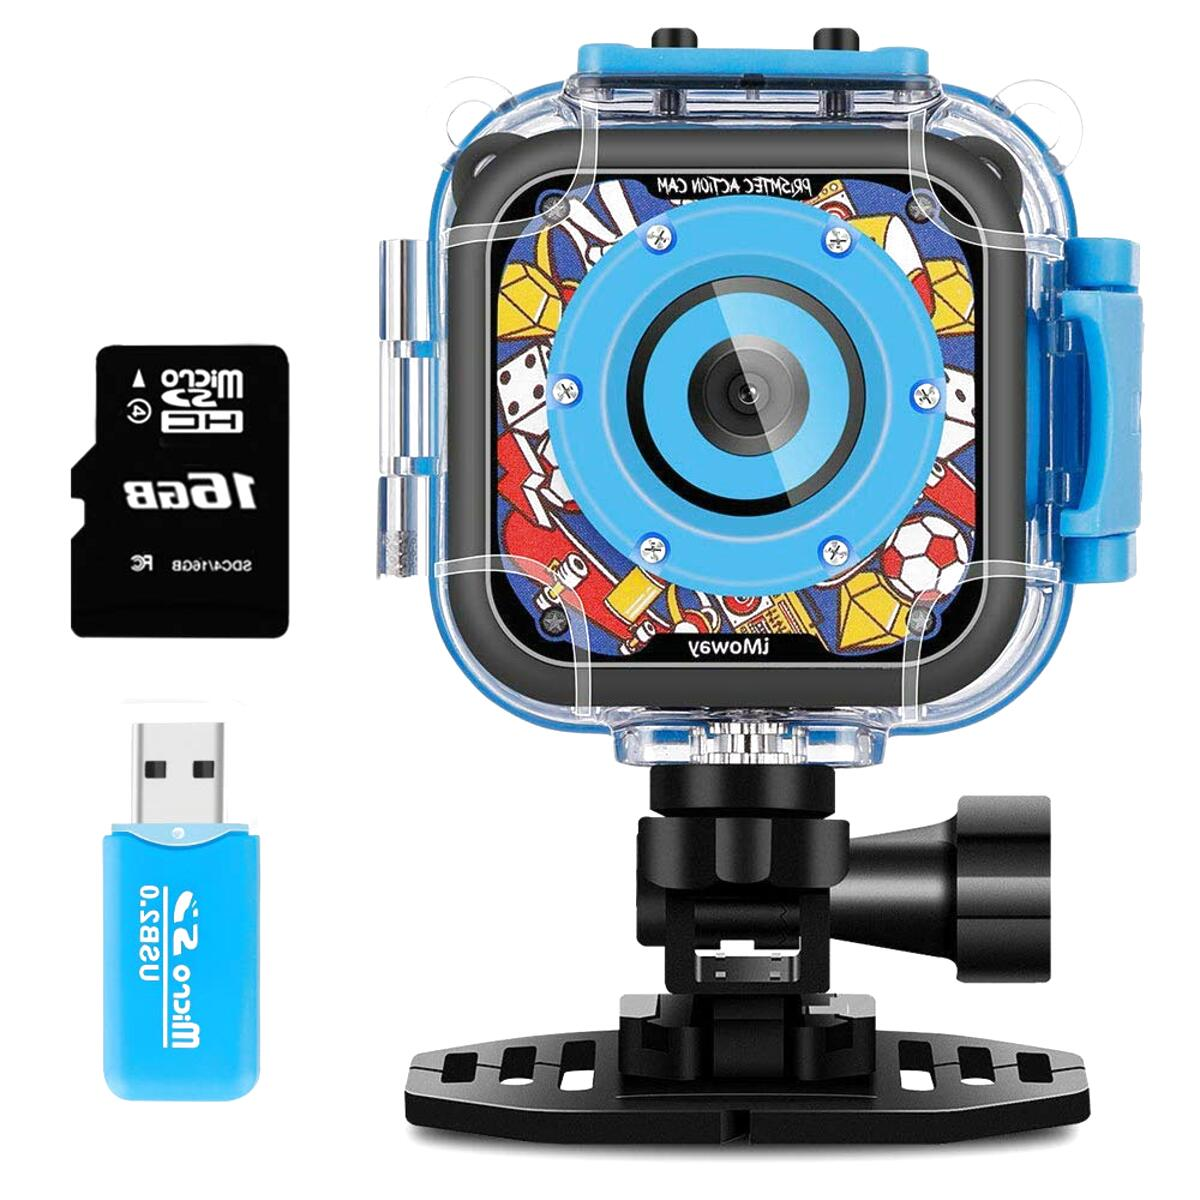 waterproof video camera for sale